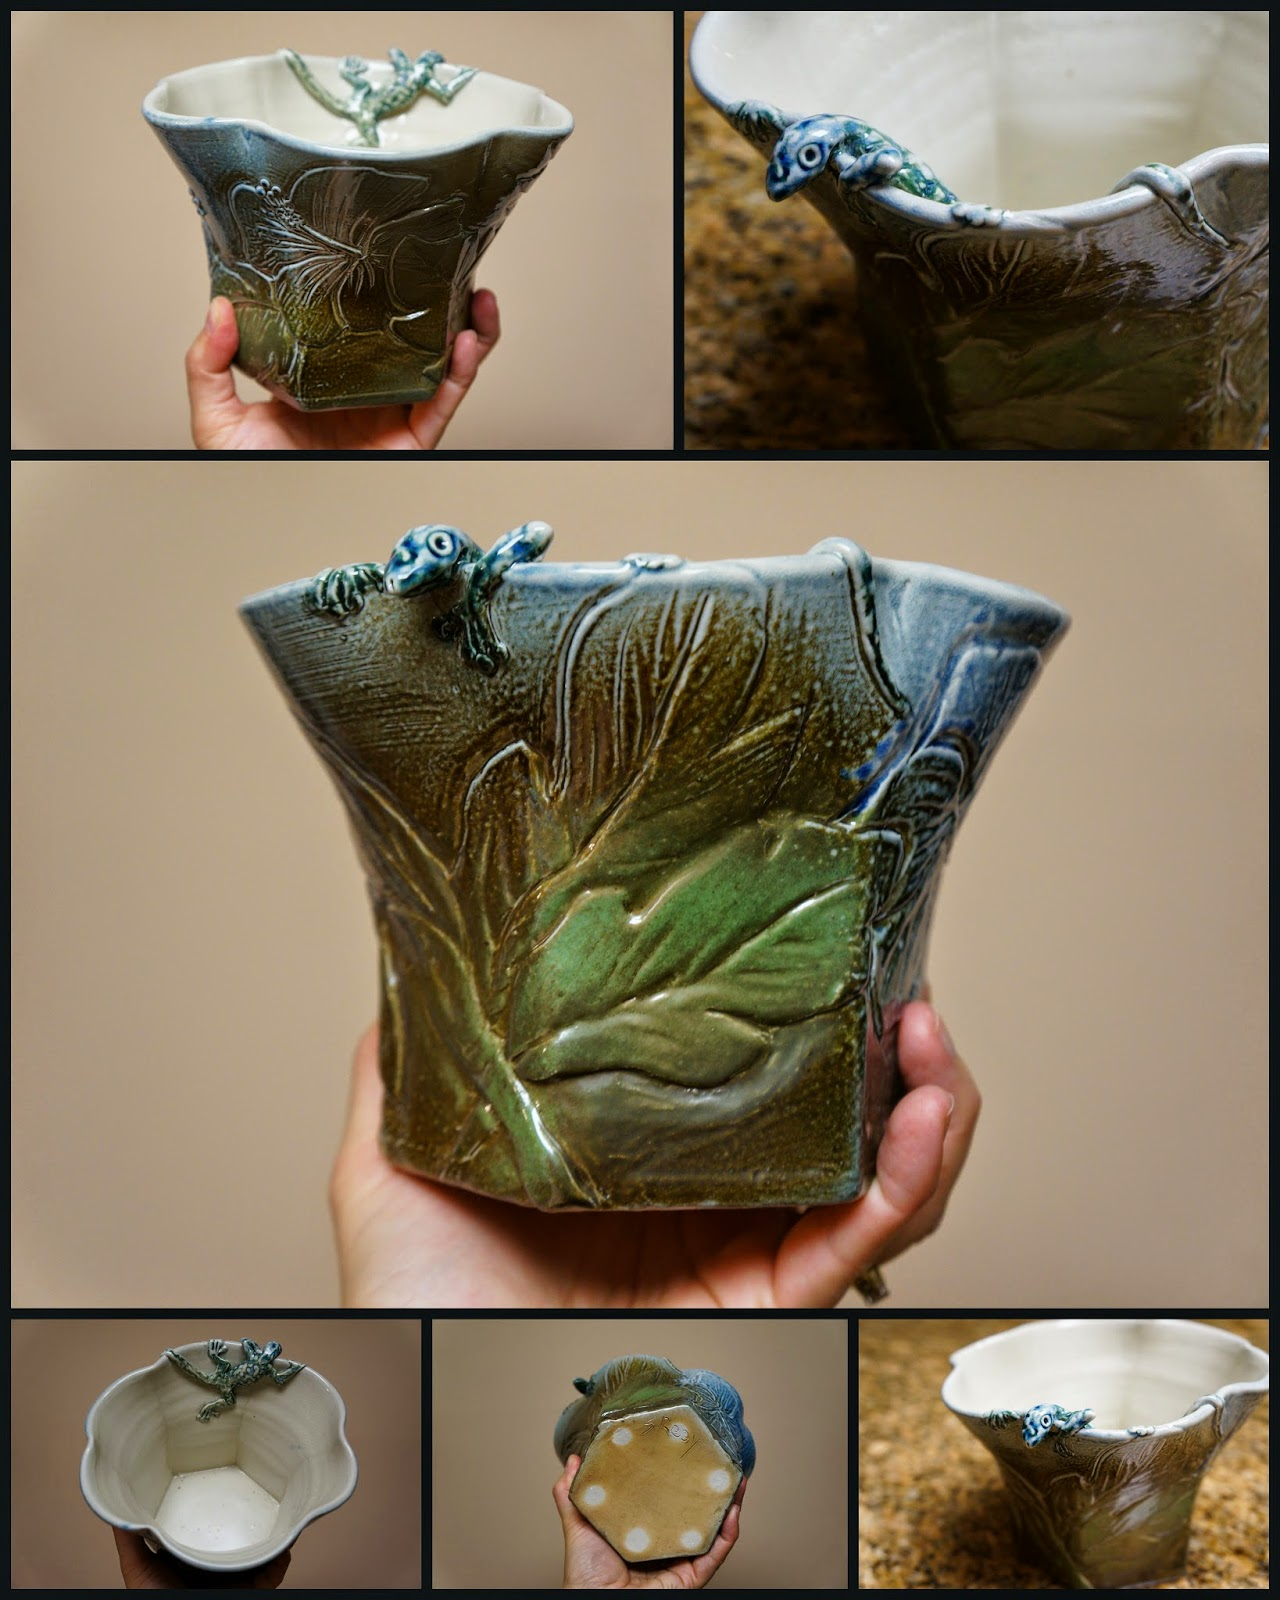 Beautiful handmade ceramic vase featuring a hibiscus carving and peeking lizard, by Sharon Reay in collaboration with Linda Doherty.